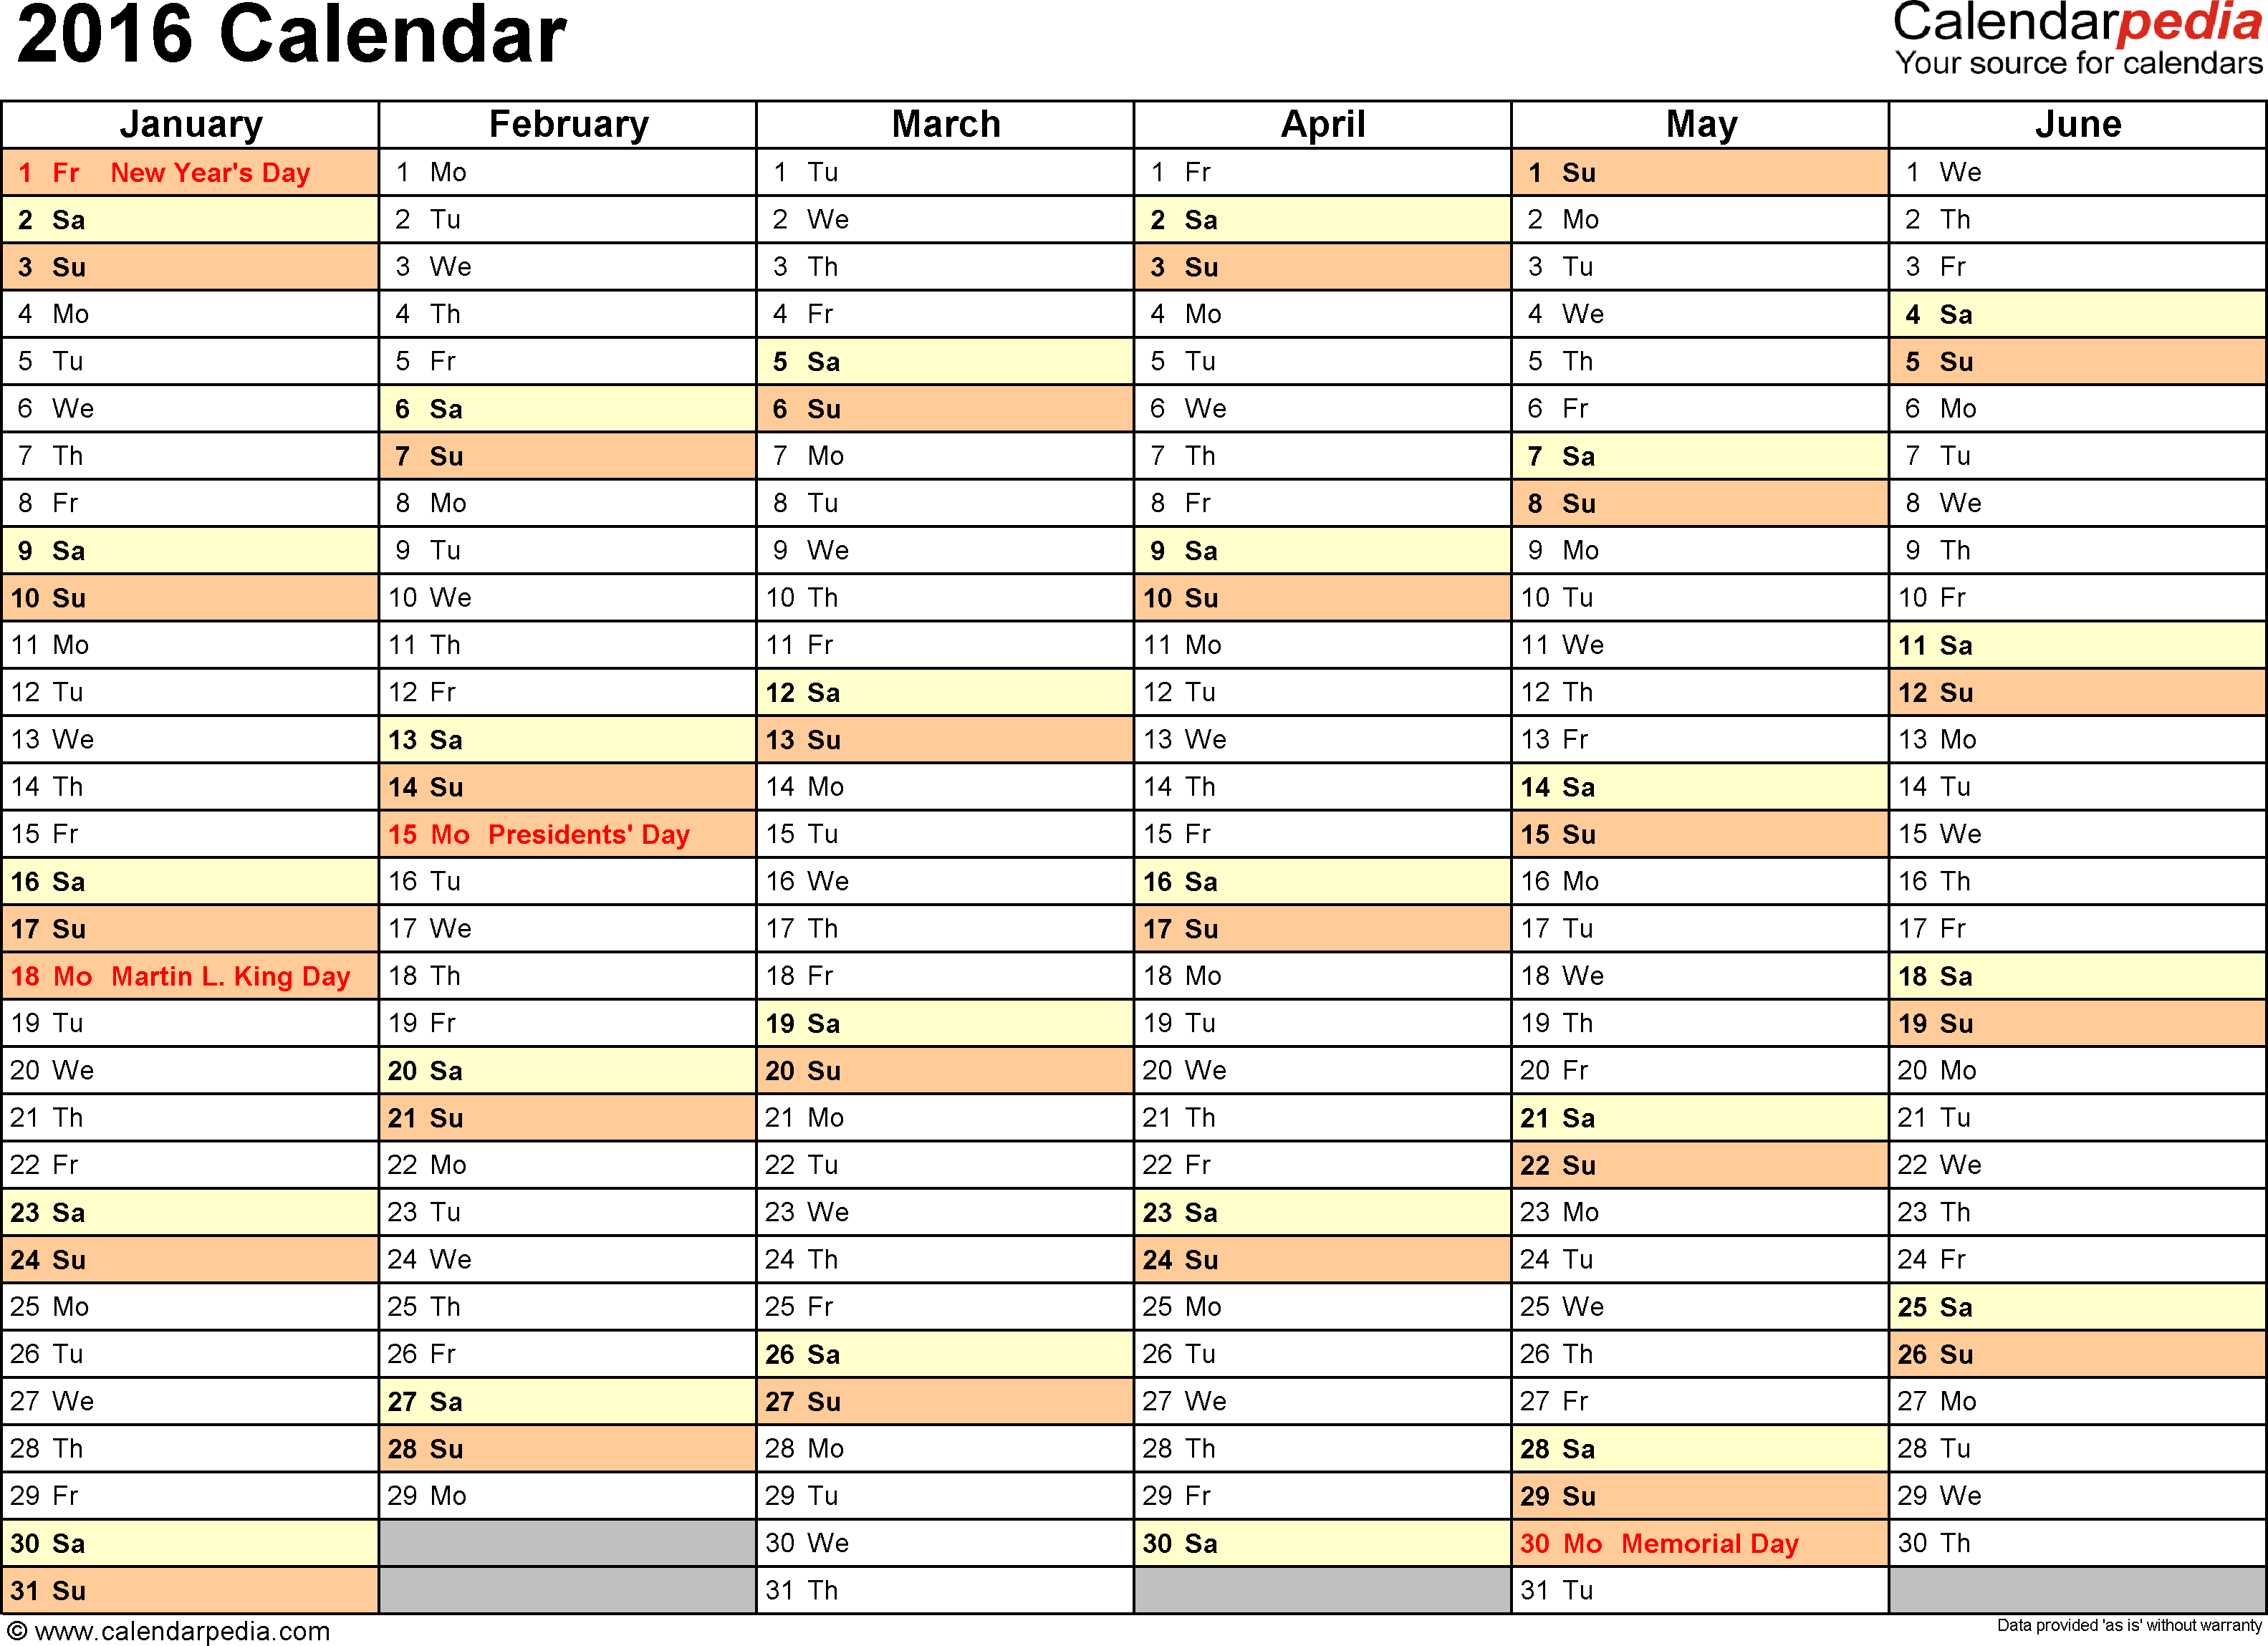 Ediblewildsus  Remarkable  Calendar  Download  Free Printable Excel Templates Xls With Fascinating Template   Calendar For Excel Months Horizontally  Pages Landscape Orientation With Charming Excel Timesheet Formulas Also Paste Csv Into Excel In Addition Time Calculation In Excel And Excel Show Formulas In Cells As Well As Excel Goal Seek  Additionally Linking Excel Workbooks From Calendarpediacom With Ediblewildsus  Fascinating  Calendar  Download  Free Printable Excel Templates Xls With Charming Template   Calendar For Excel Months Horizontally  Pages Landscape Orientation And Remarkable Excel Timesheet Formulas Also Paste Csv Into Excel In Addition Time Calculation In Excel From Calendarpediacom